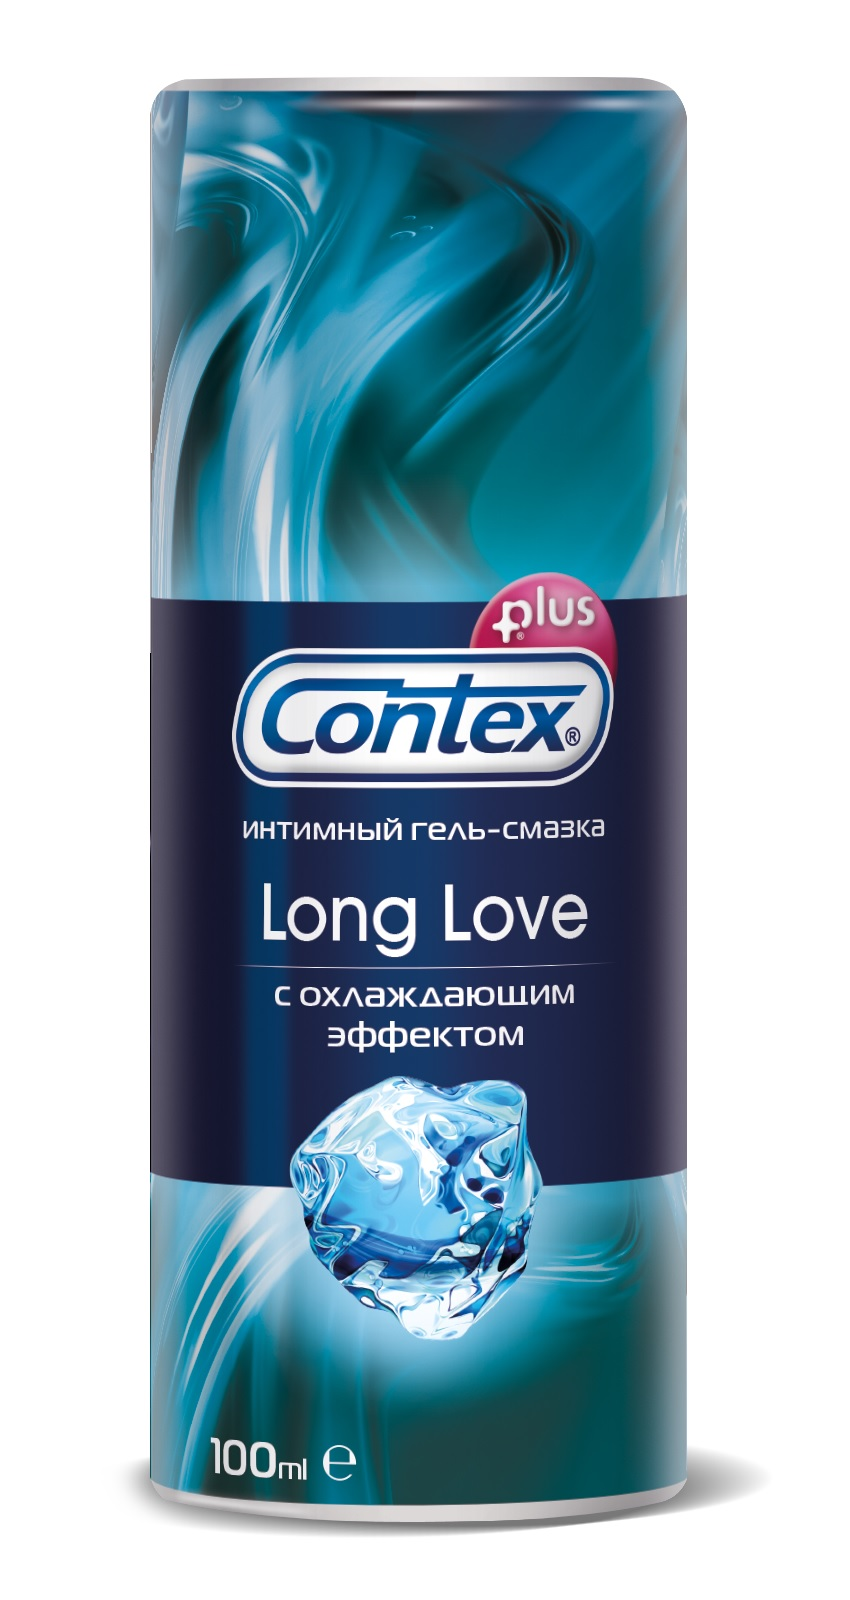 Гель смазка contex 100мл long love продлевающ (ALTERMED CORPORATION A.S.)